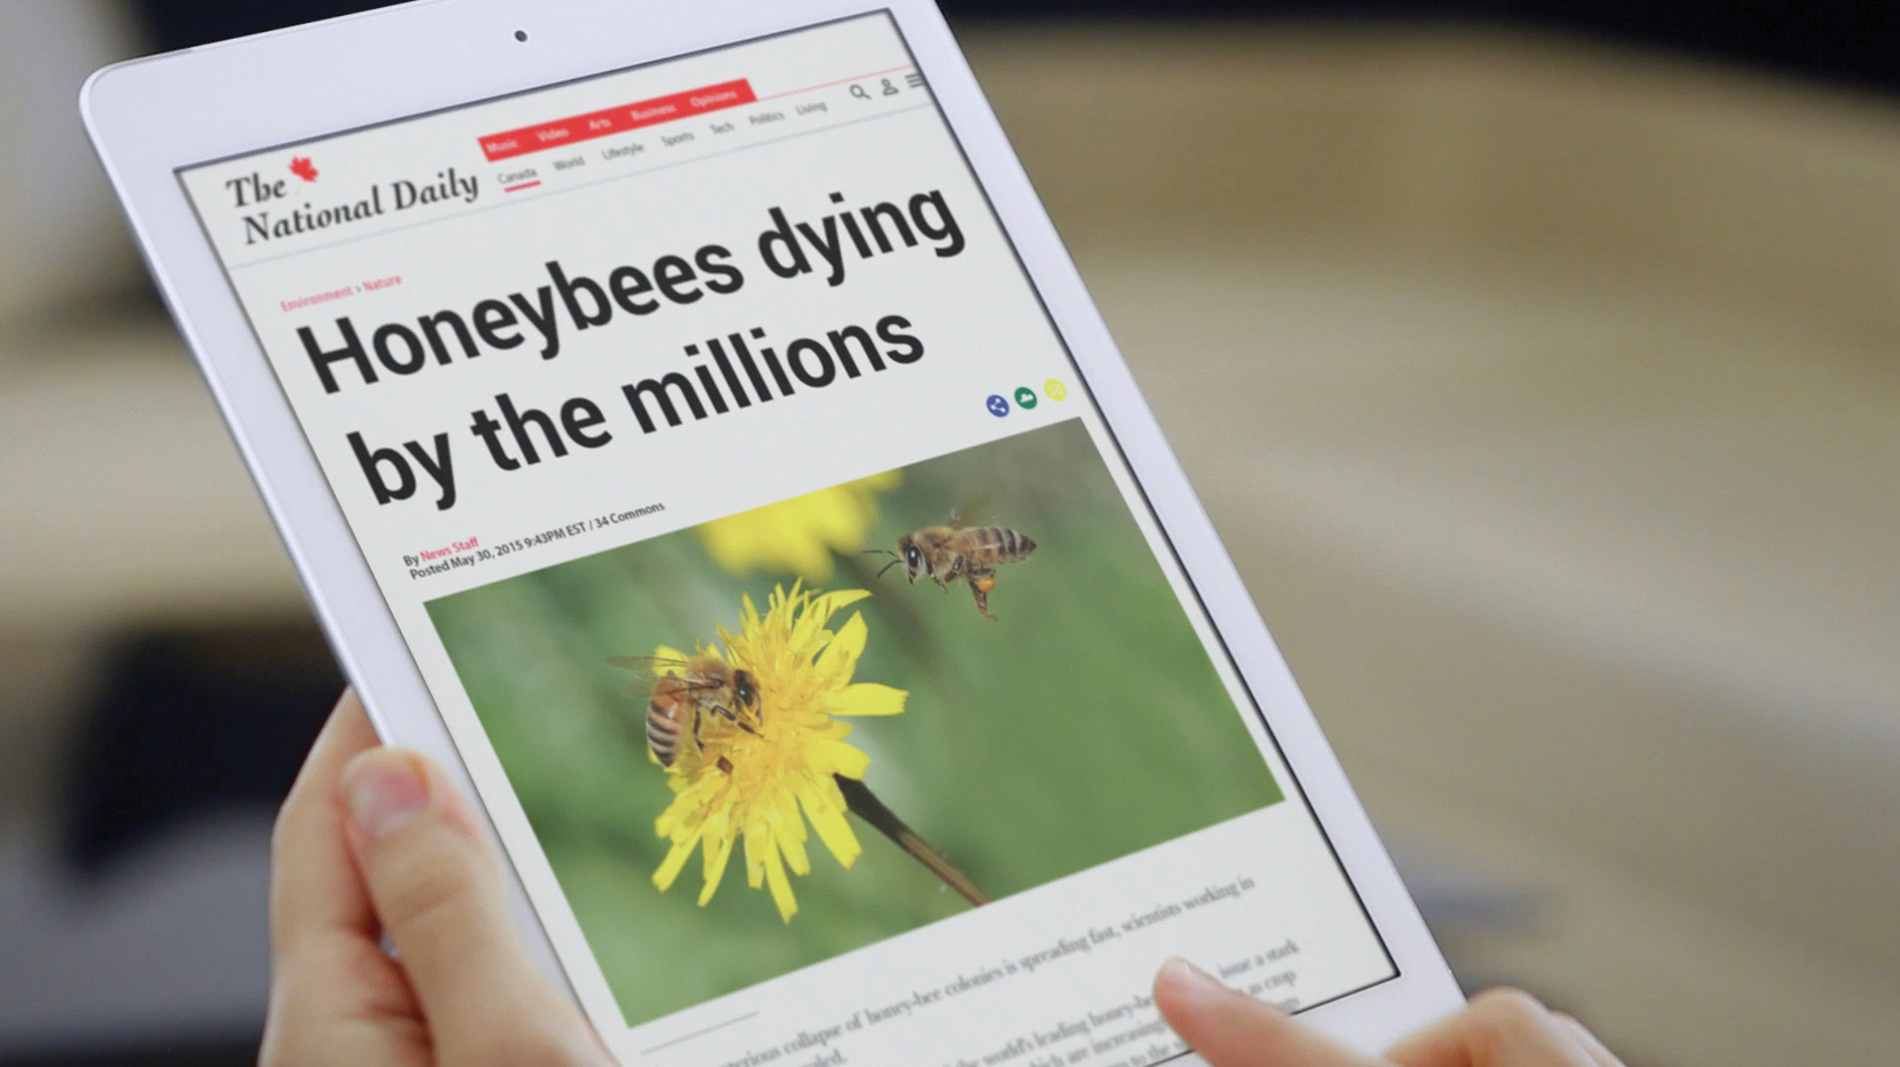 To help consumers connect with Cheerios again, Cossette and General Mills did the unthinkable: They pulled Buzz the bee from the box to help people realize the impact of a declining bee population.